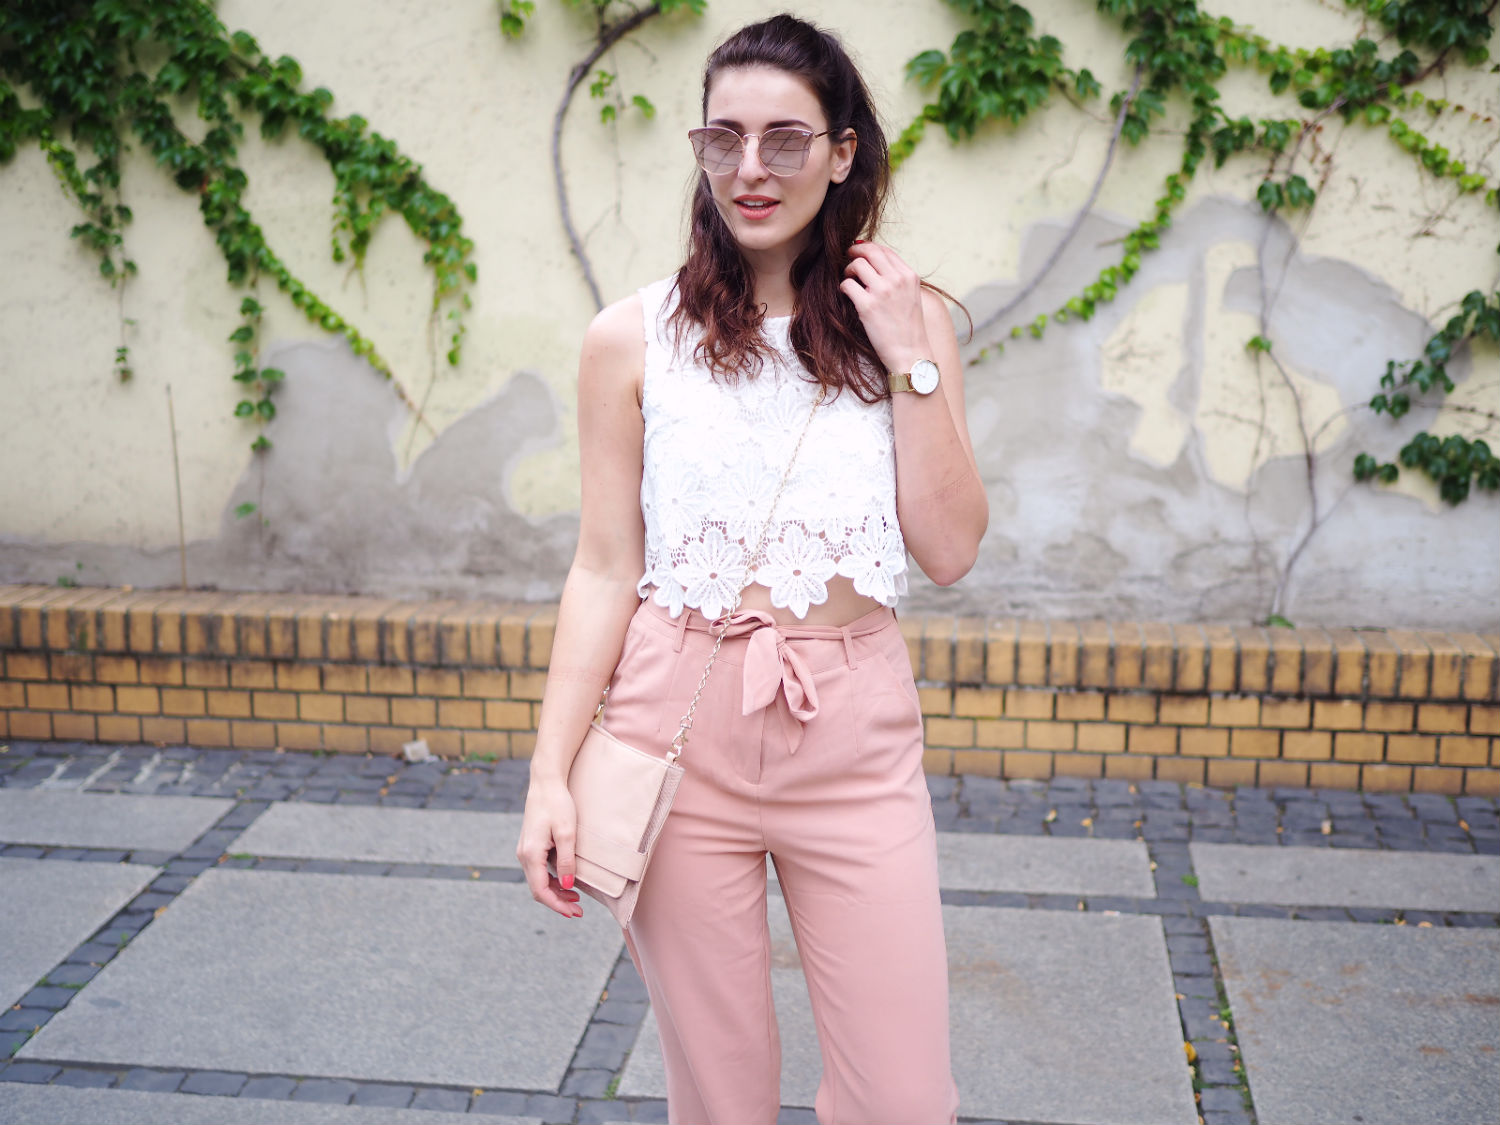 blush culottes adidas superstars streetstyle oasis cluse watch summer look berlin fashion week quer halb 2